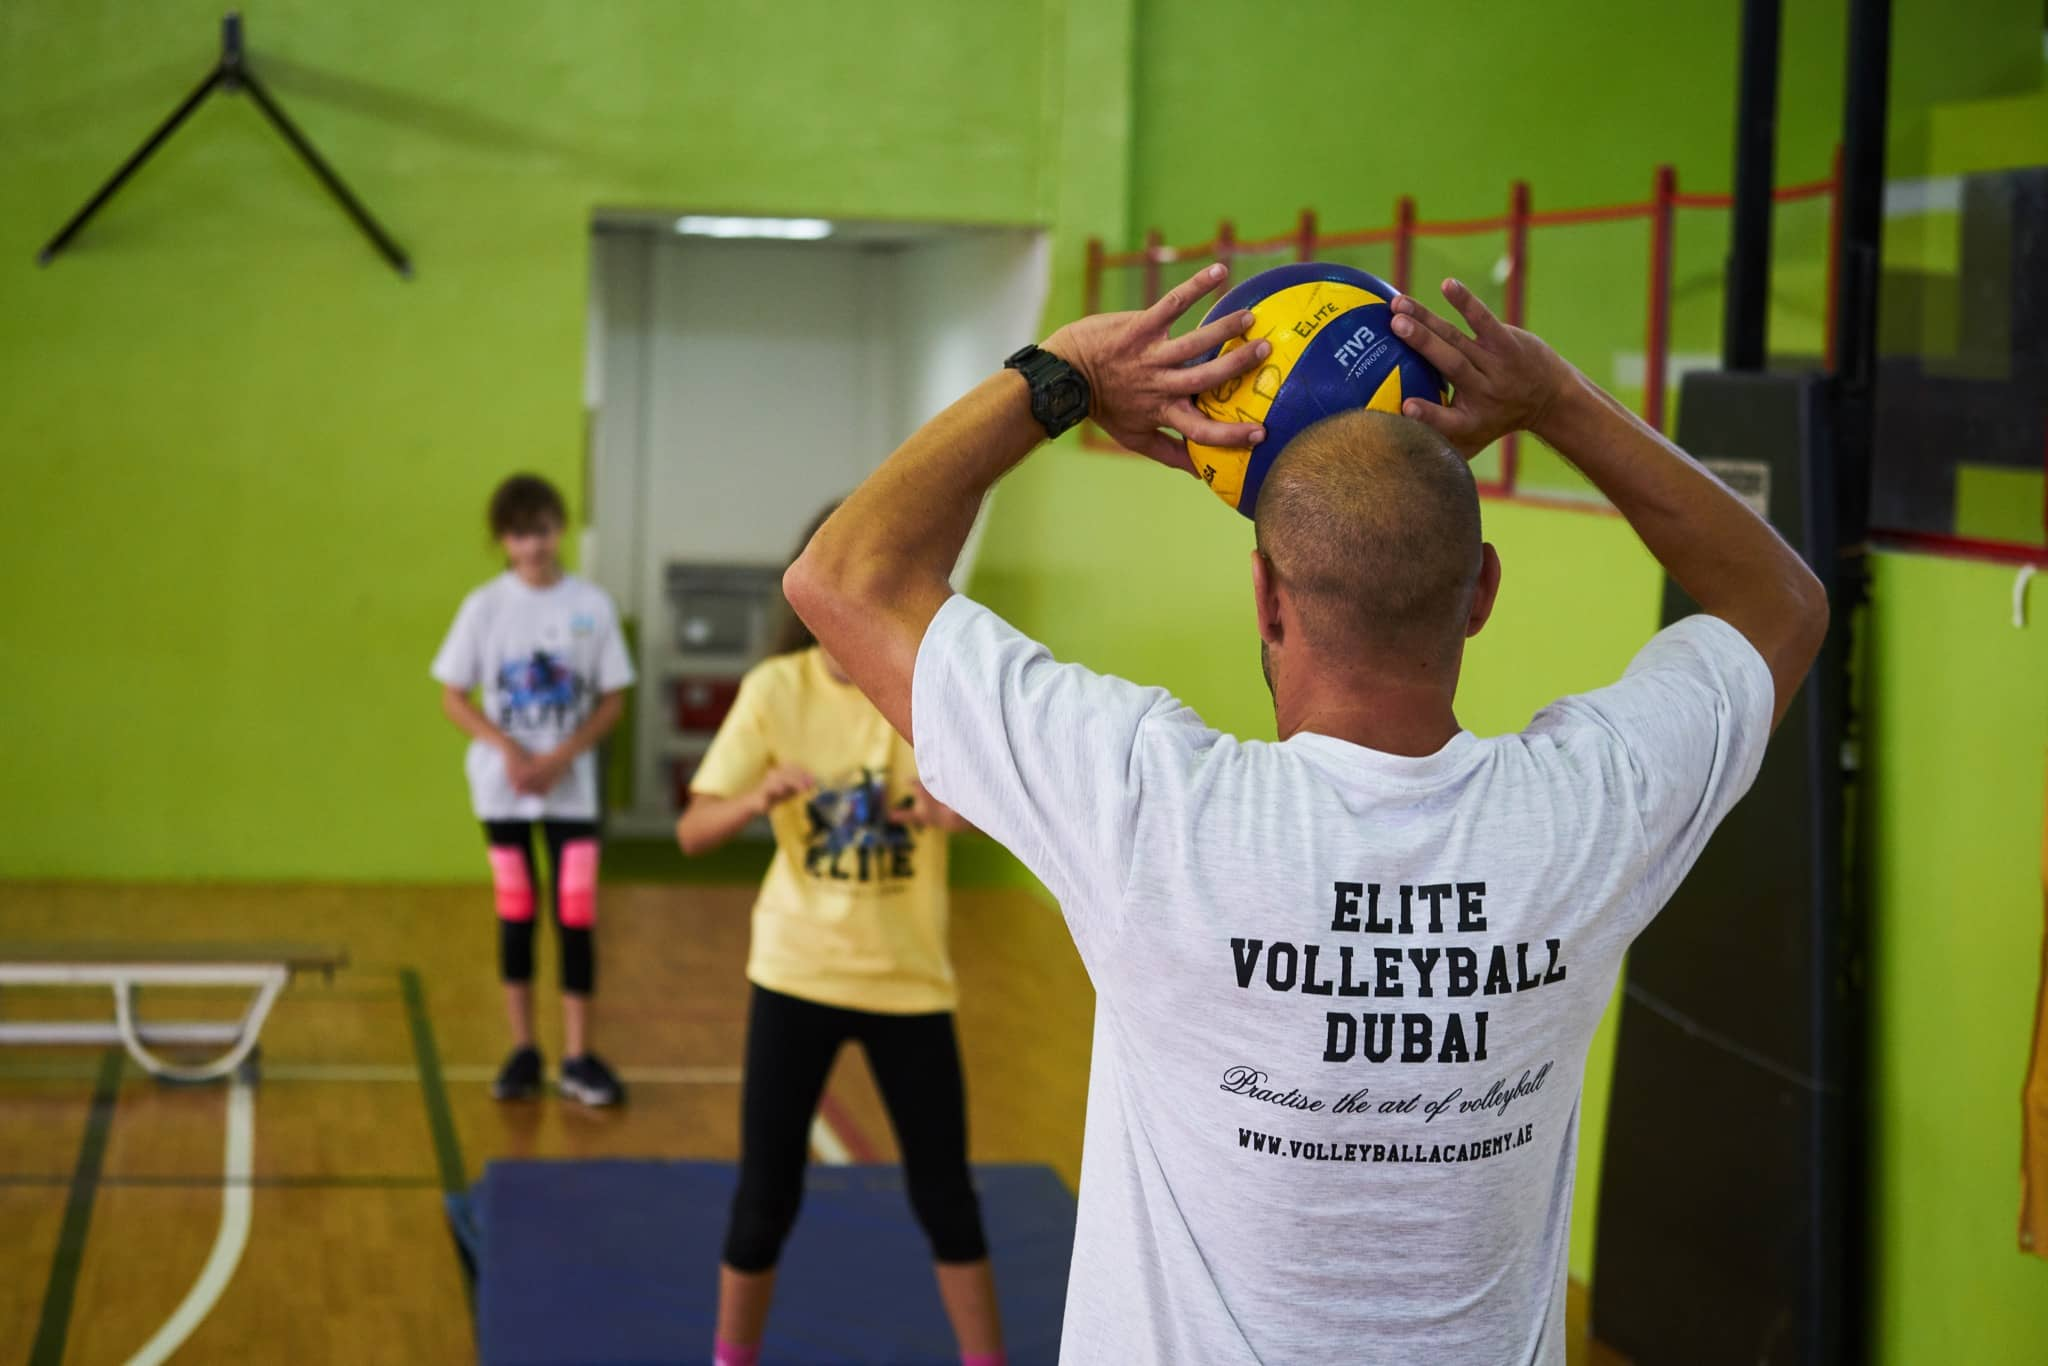 volleyball-academy-dubai-photo-00021